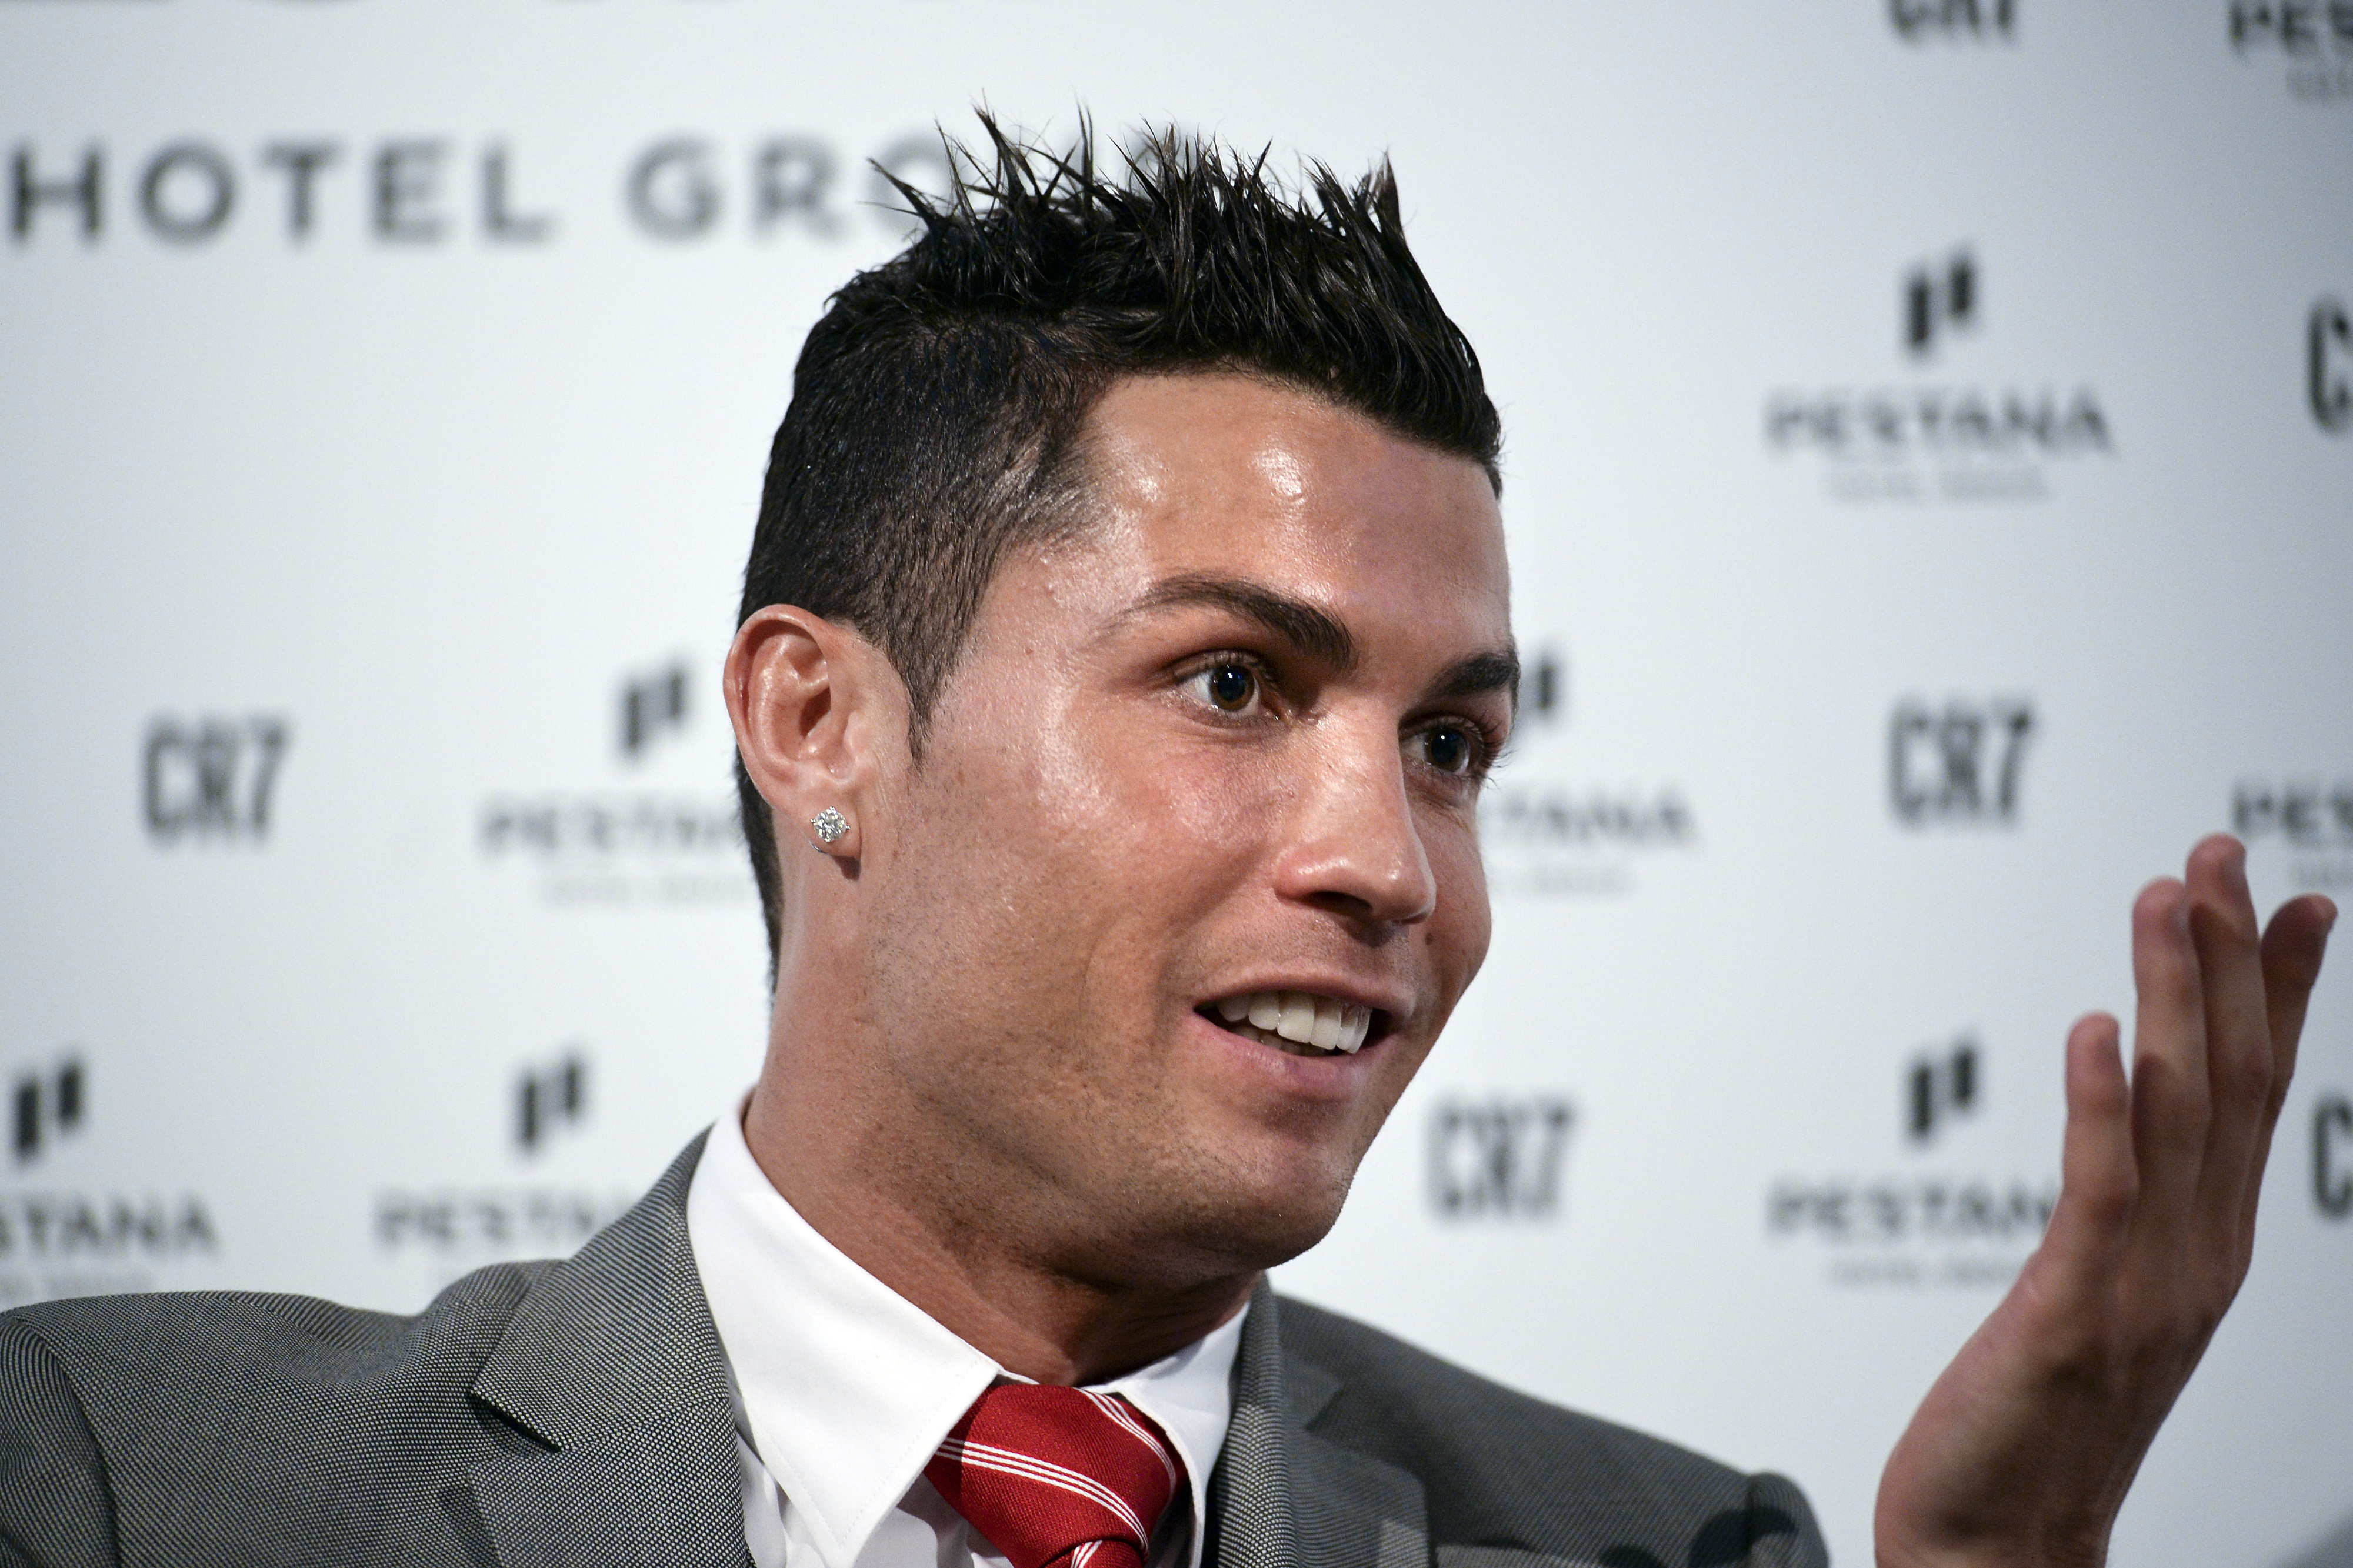 "Real Madrid's player Cristiano Ronaldo speaks during a press conference at Pestana Hotel Palace in Lisbon on December 17, 2015. Cristiano Ronaldo will invest over 37 million euros in the Pestana hotel group to create four new hotels with the ""CR7"" logo in Portugal, Madrid and New York.   AFP PHOTO / PATRICIA DE MELO MOREIRA / AFP / PATRICIA DE MELO MOREIRA"